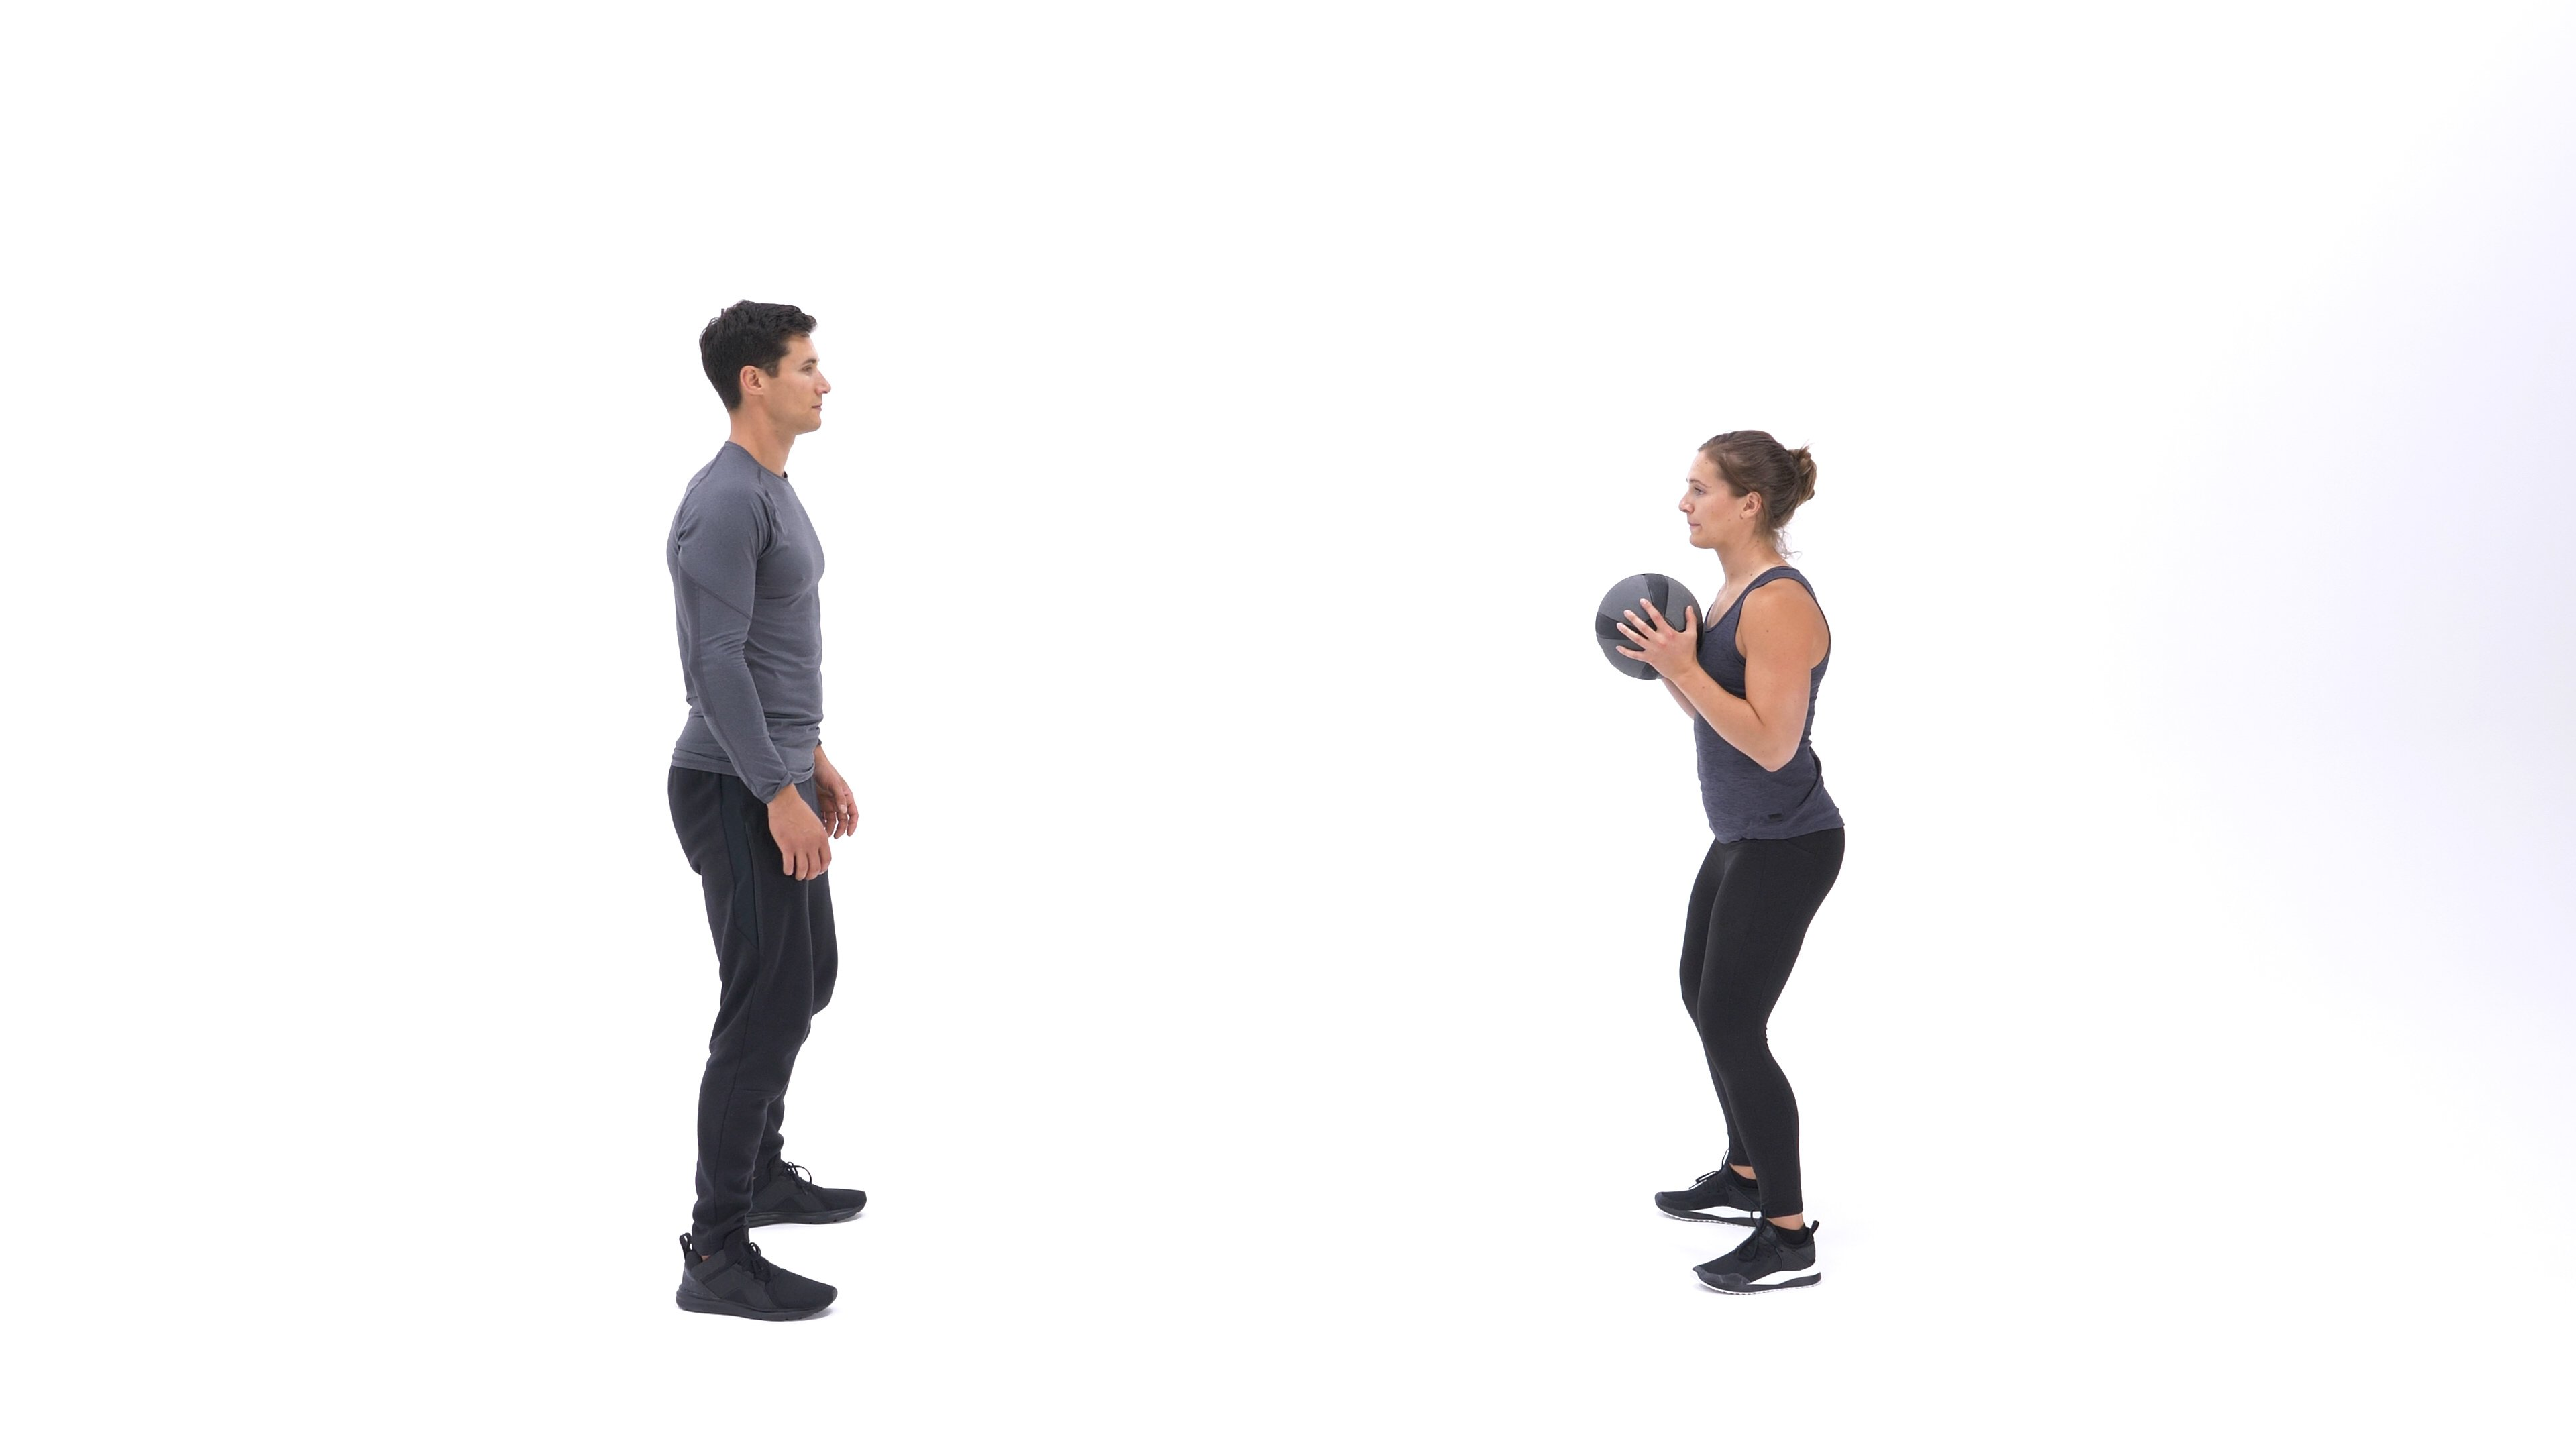 Medicine Ball Chest Pass image